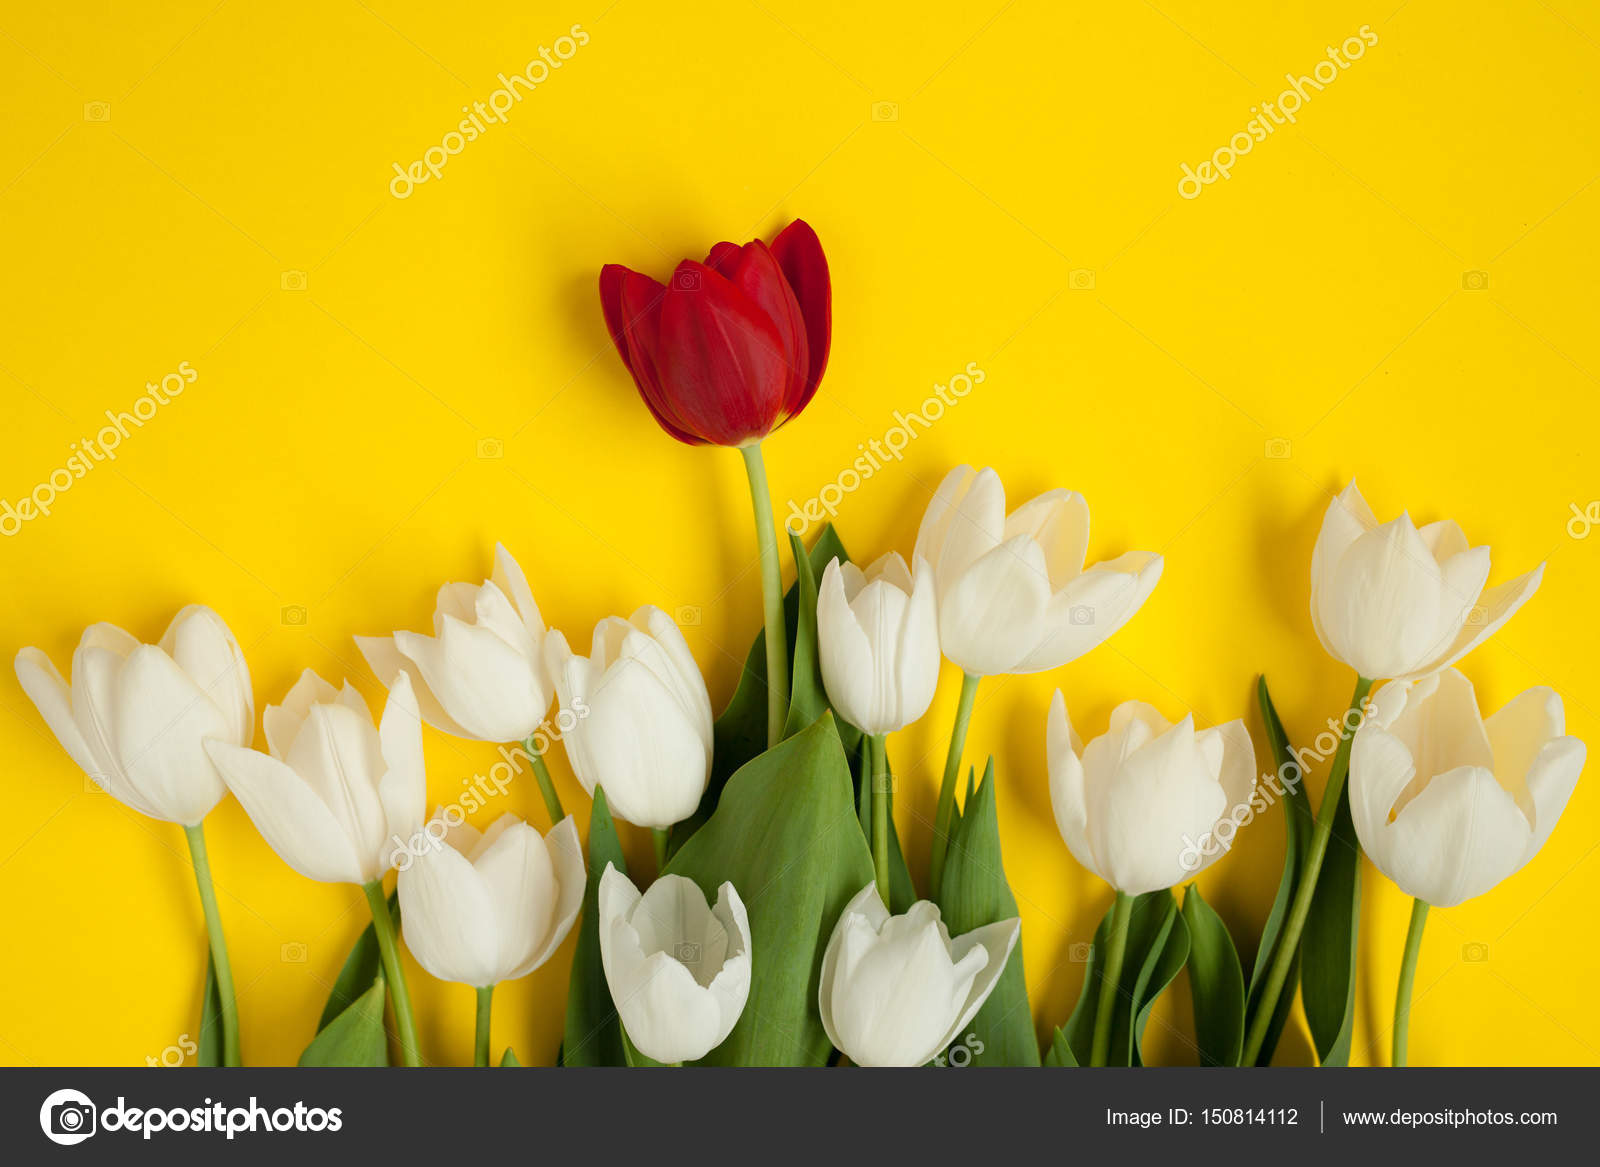 Bunch Of White Flowers With Red One Stock Photo Kegfire 150814112